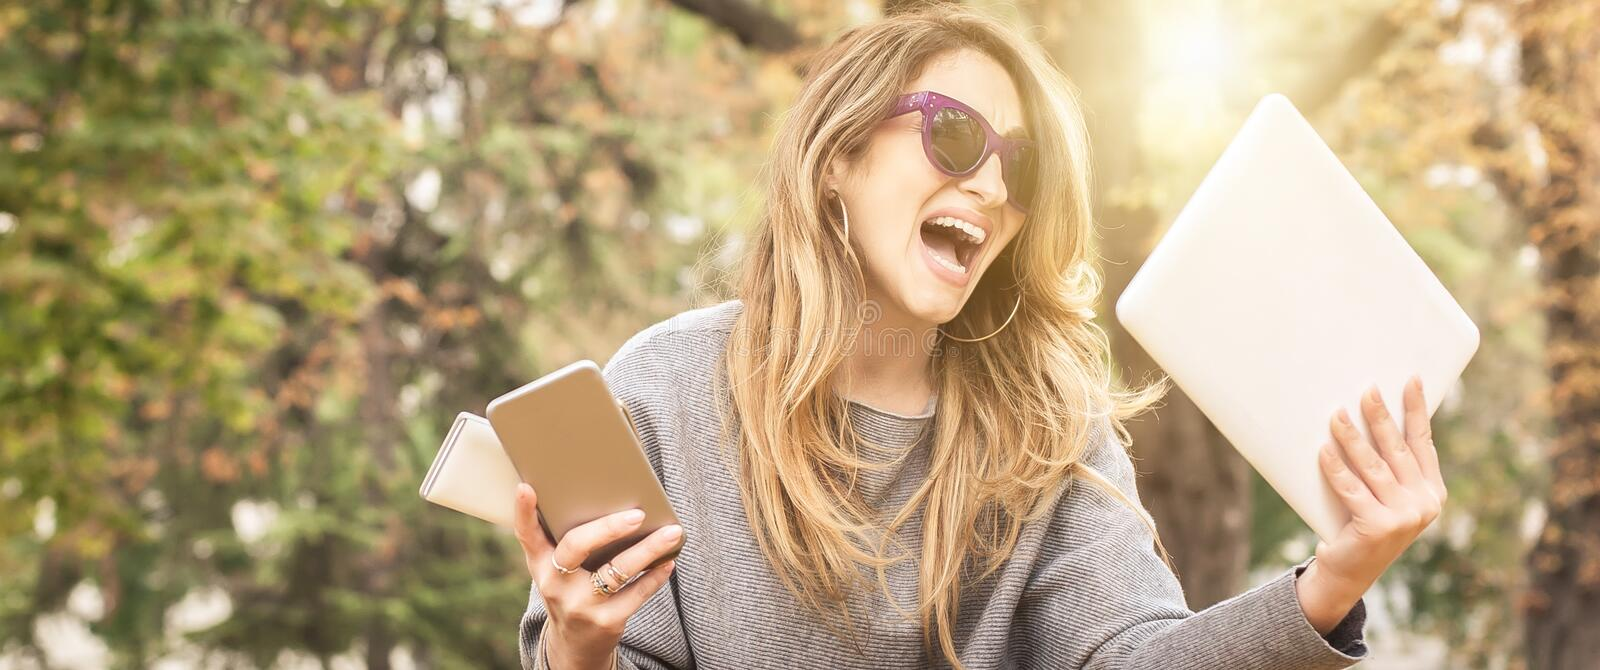 Hysterical girl with too many screens, mobils, tablets and laptops stock image